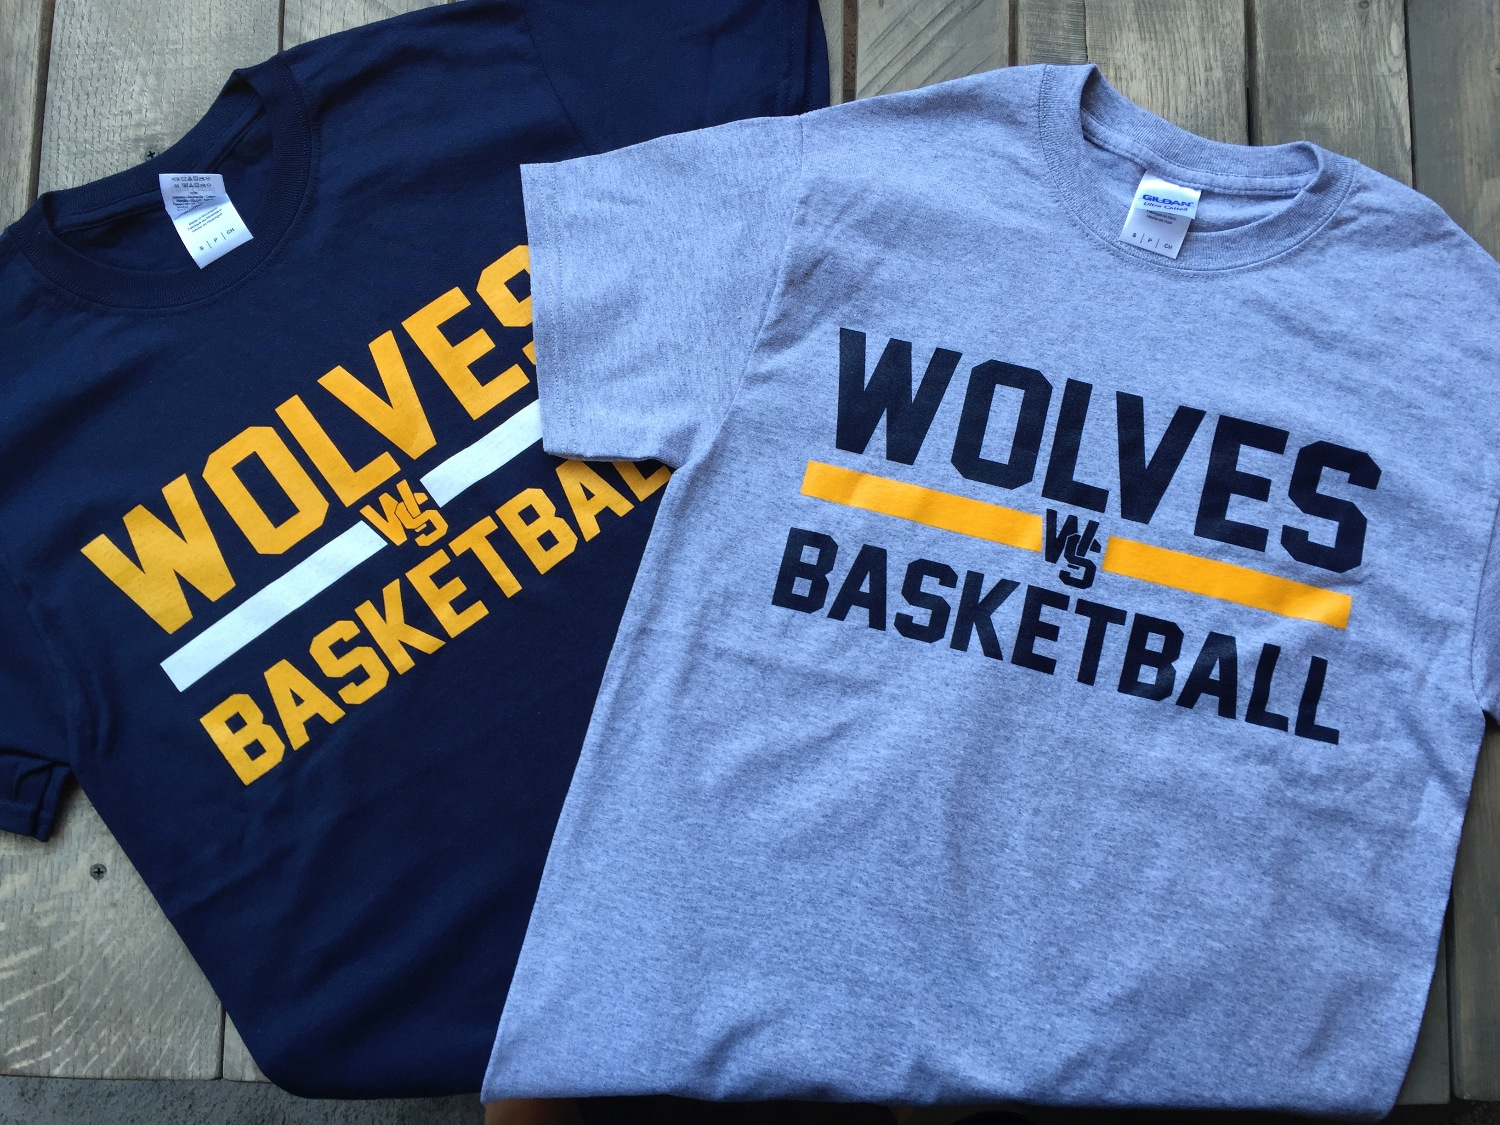 WOLVES Basketball t-shirt